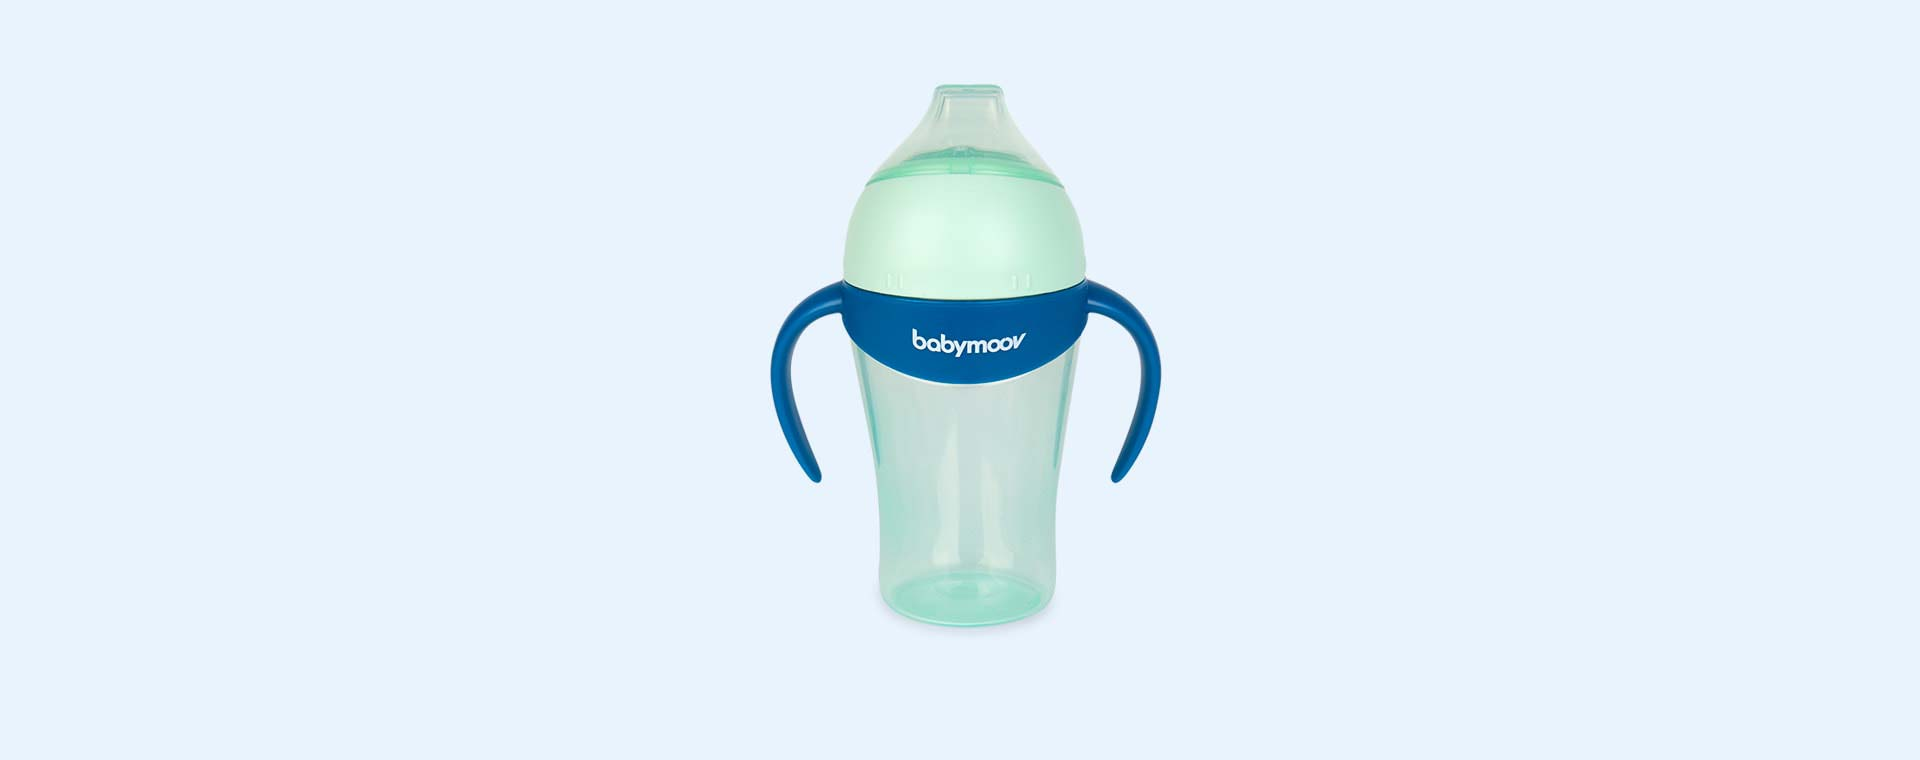 Azur Babymoov Non Spill Cup With Spout